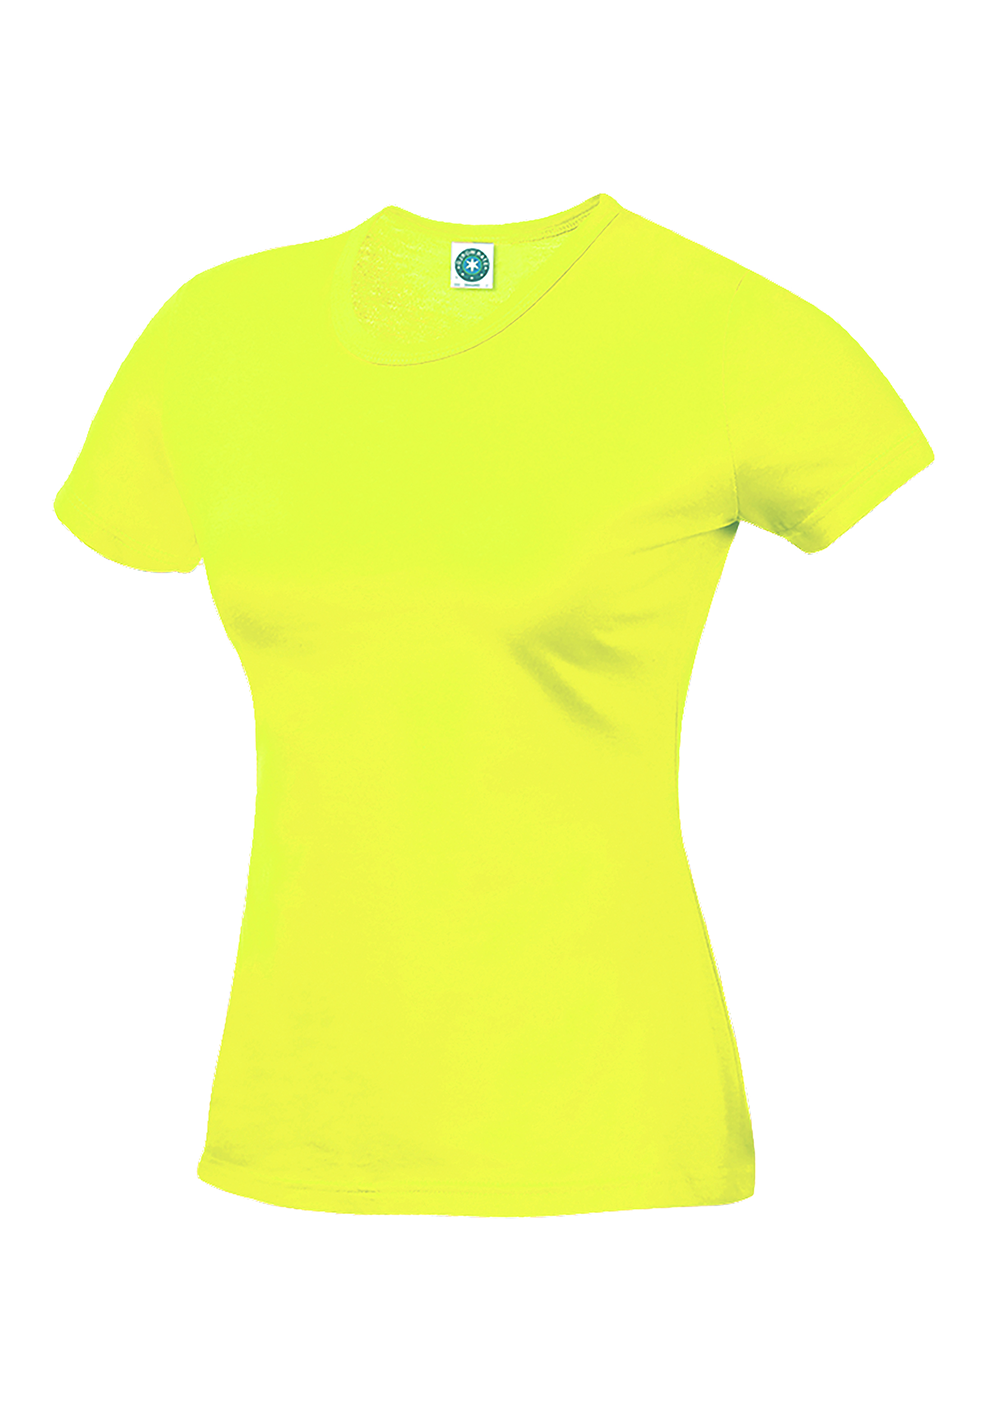 SW404-64-FLYellow.png